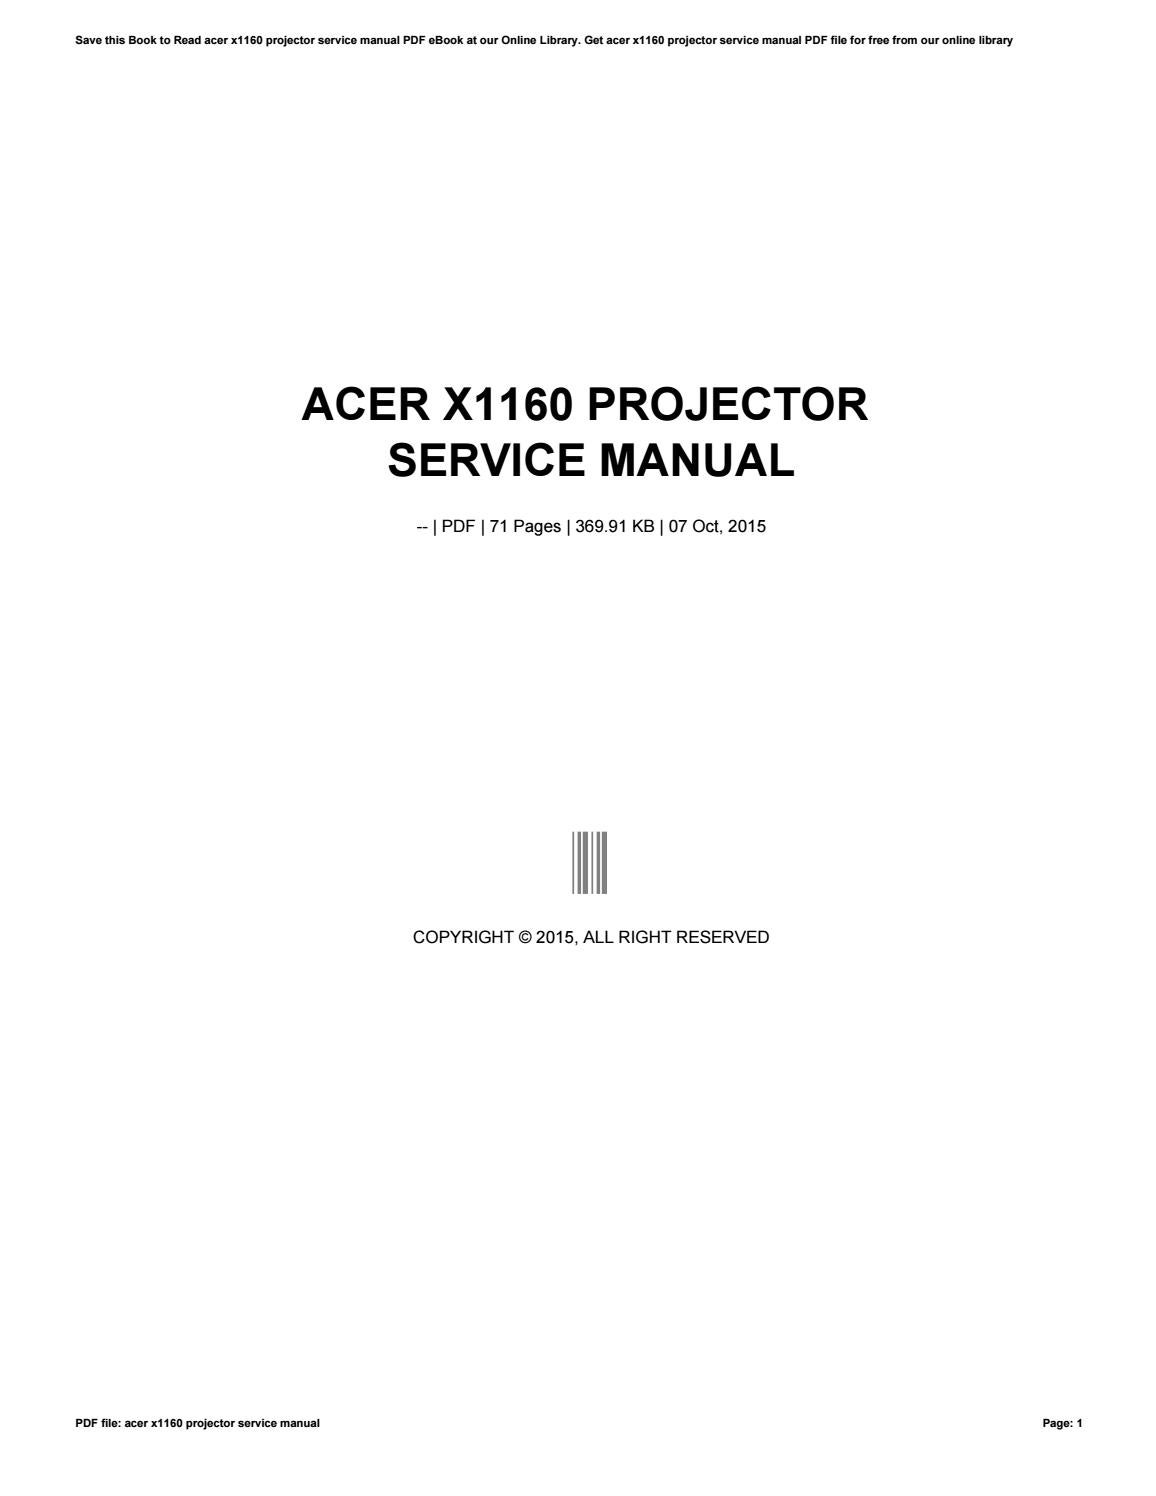 acer x1160 projector service manual by ty499 issuu rh issuu com acer x1160z service manual Acer Aspire V5 User Manual